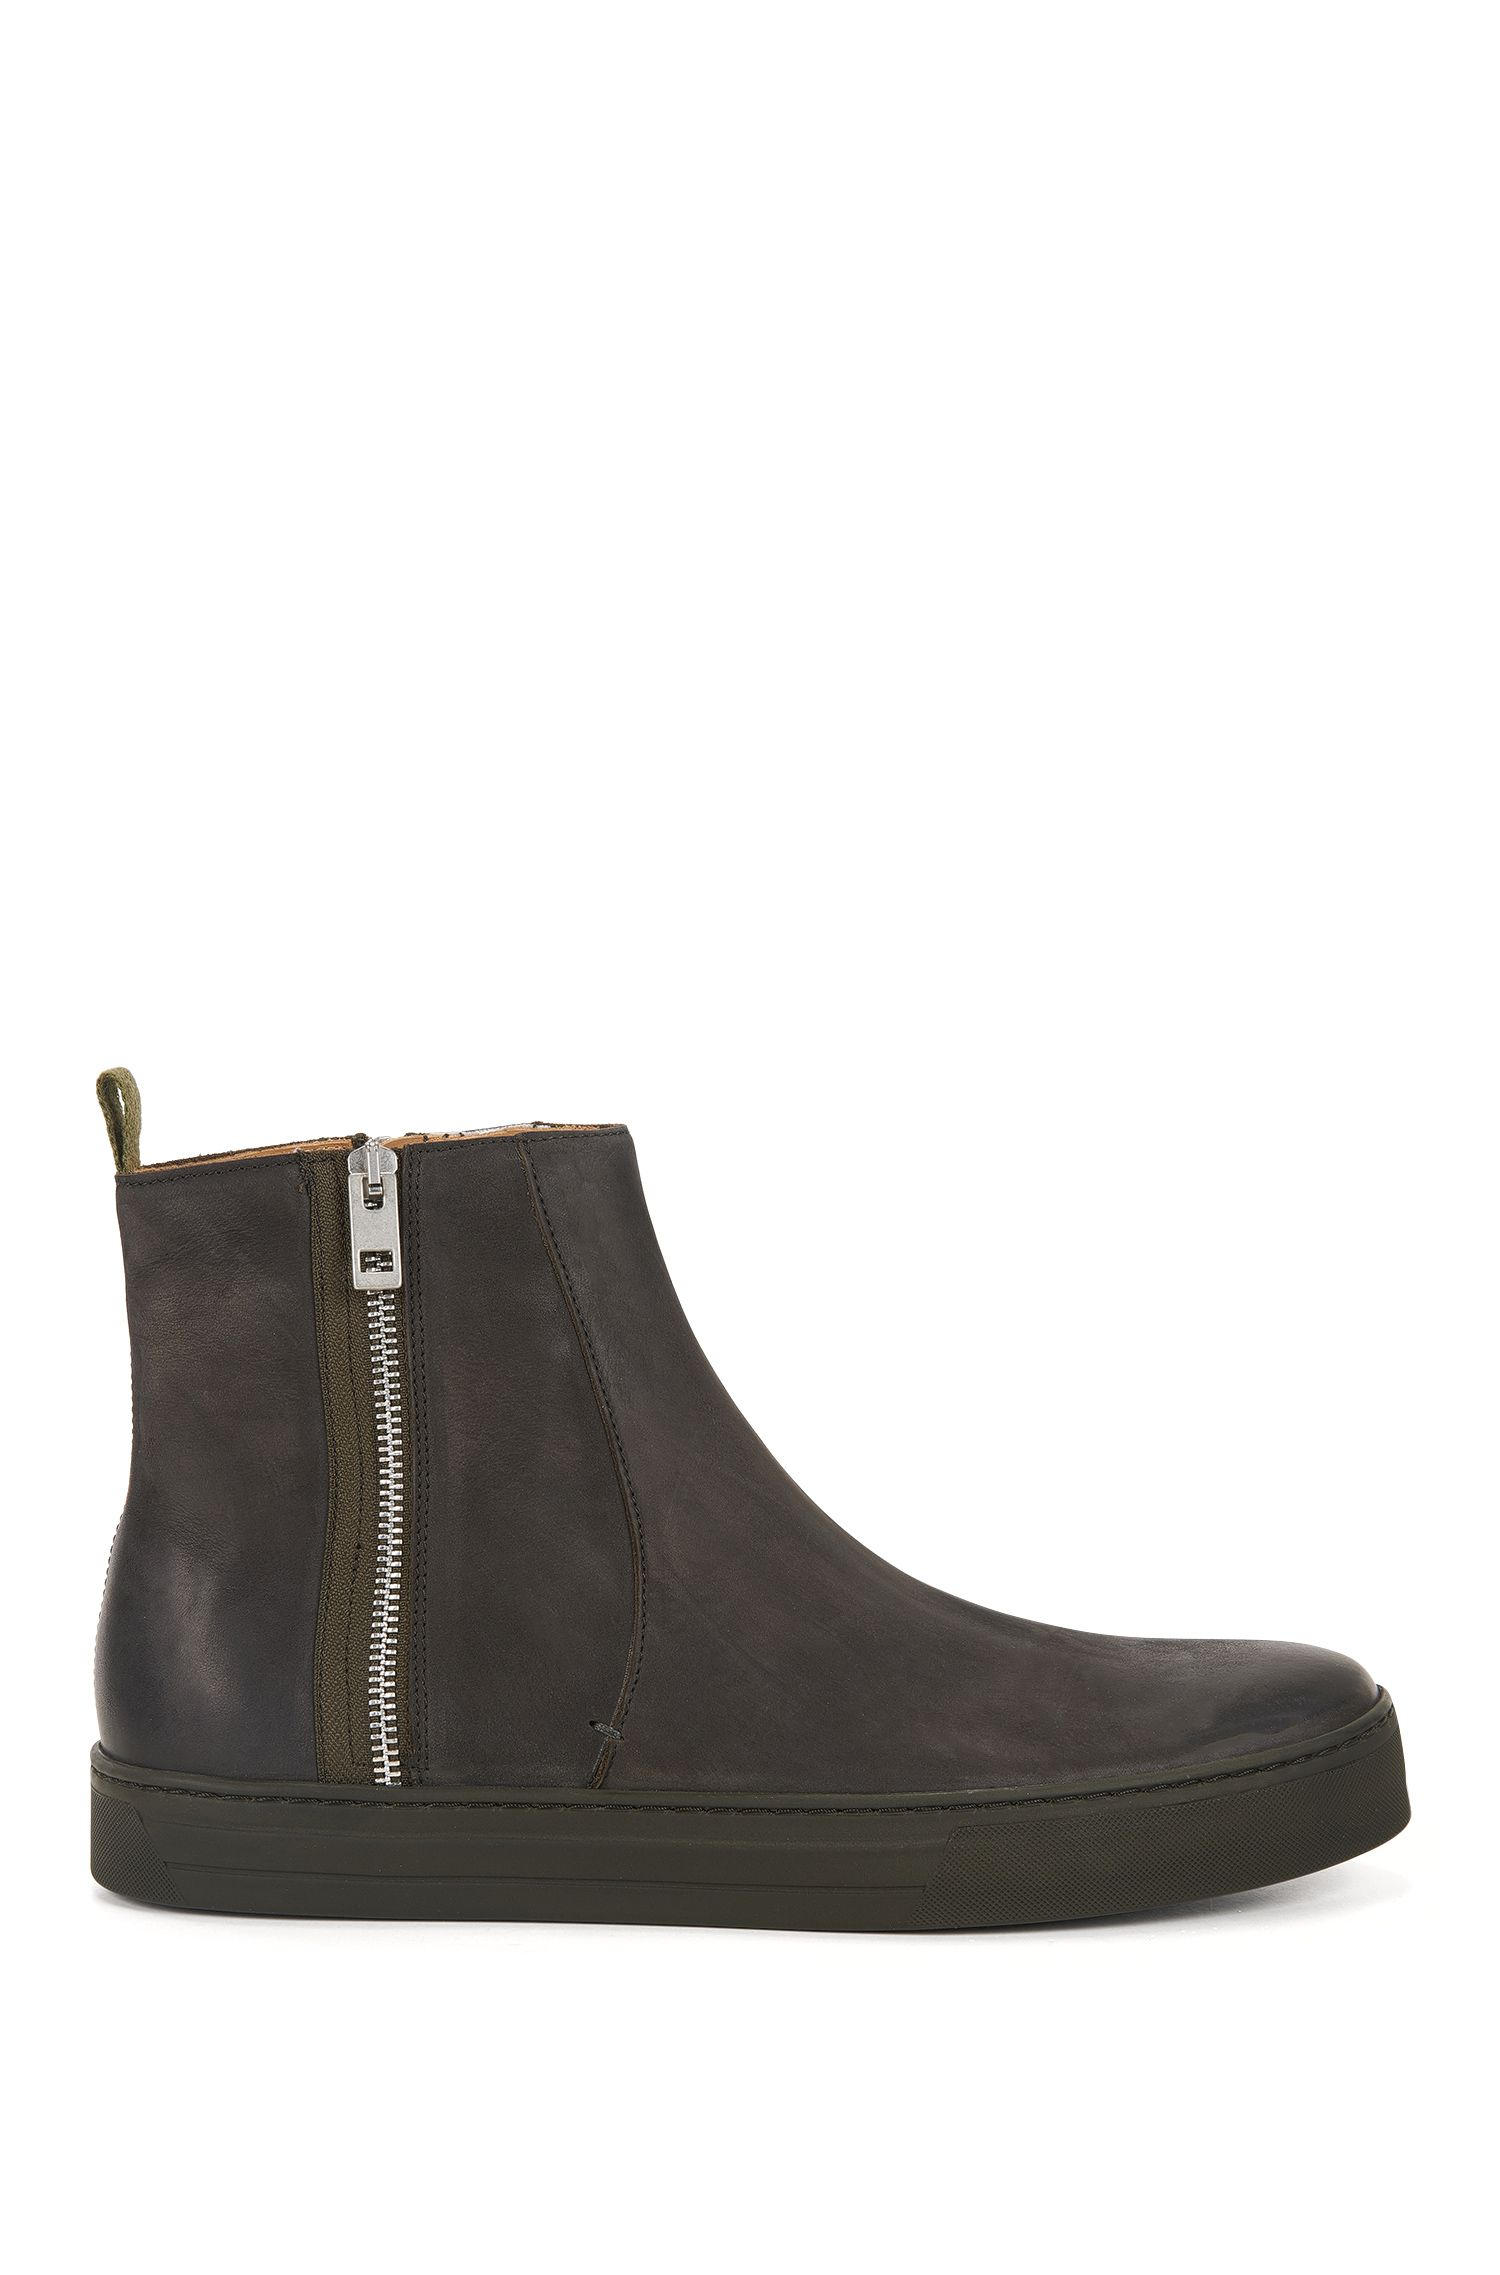 Side-zip boots in soft nubuck